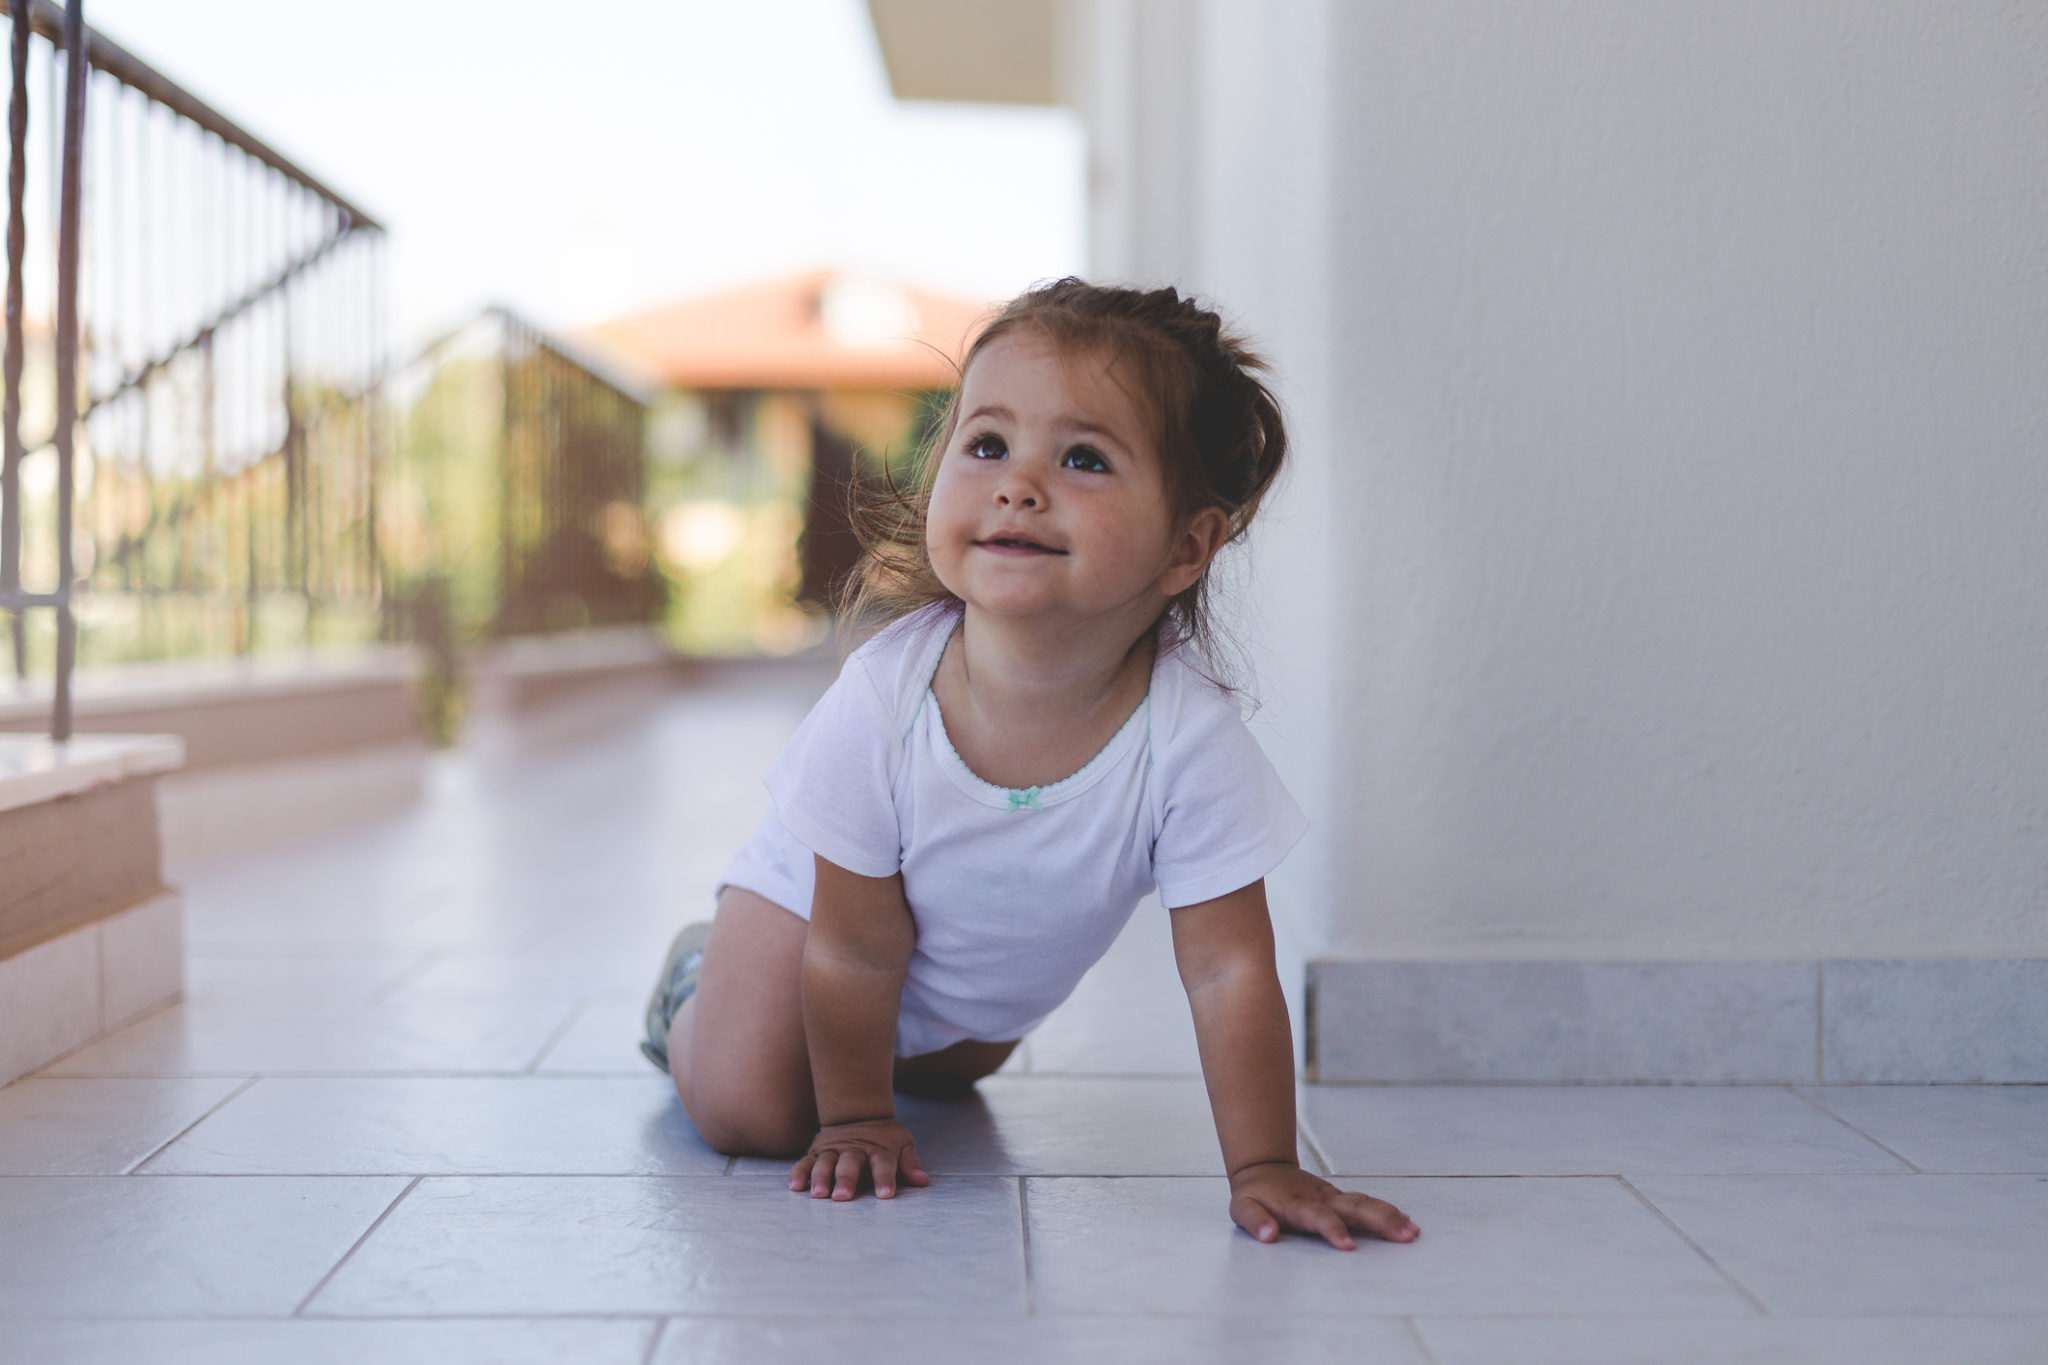 baby on tile exterior patio